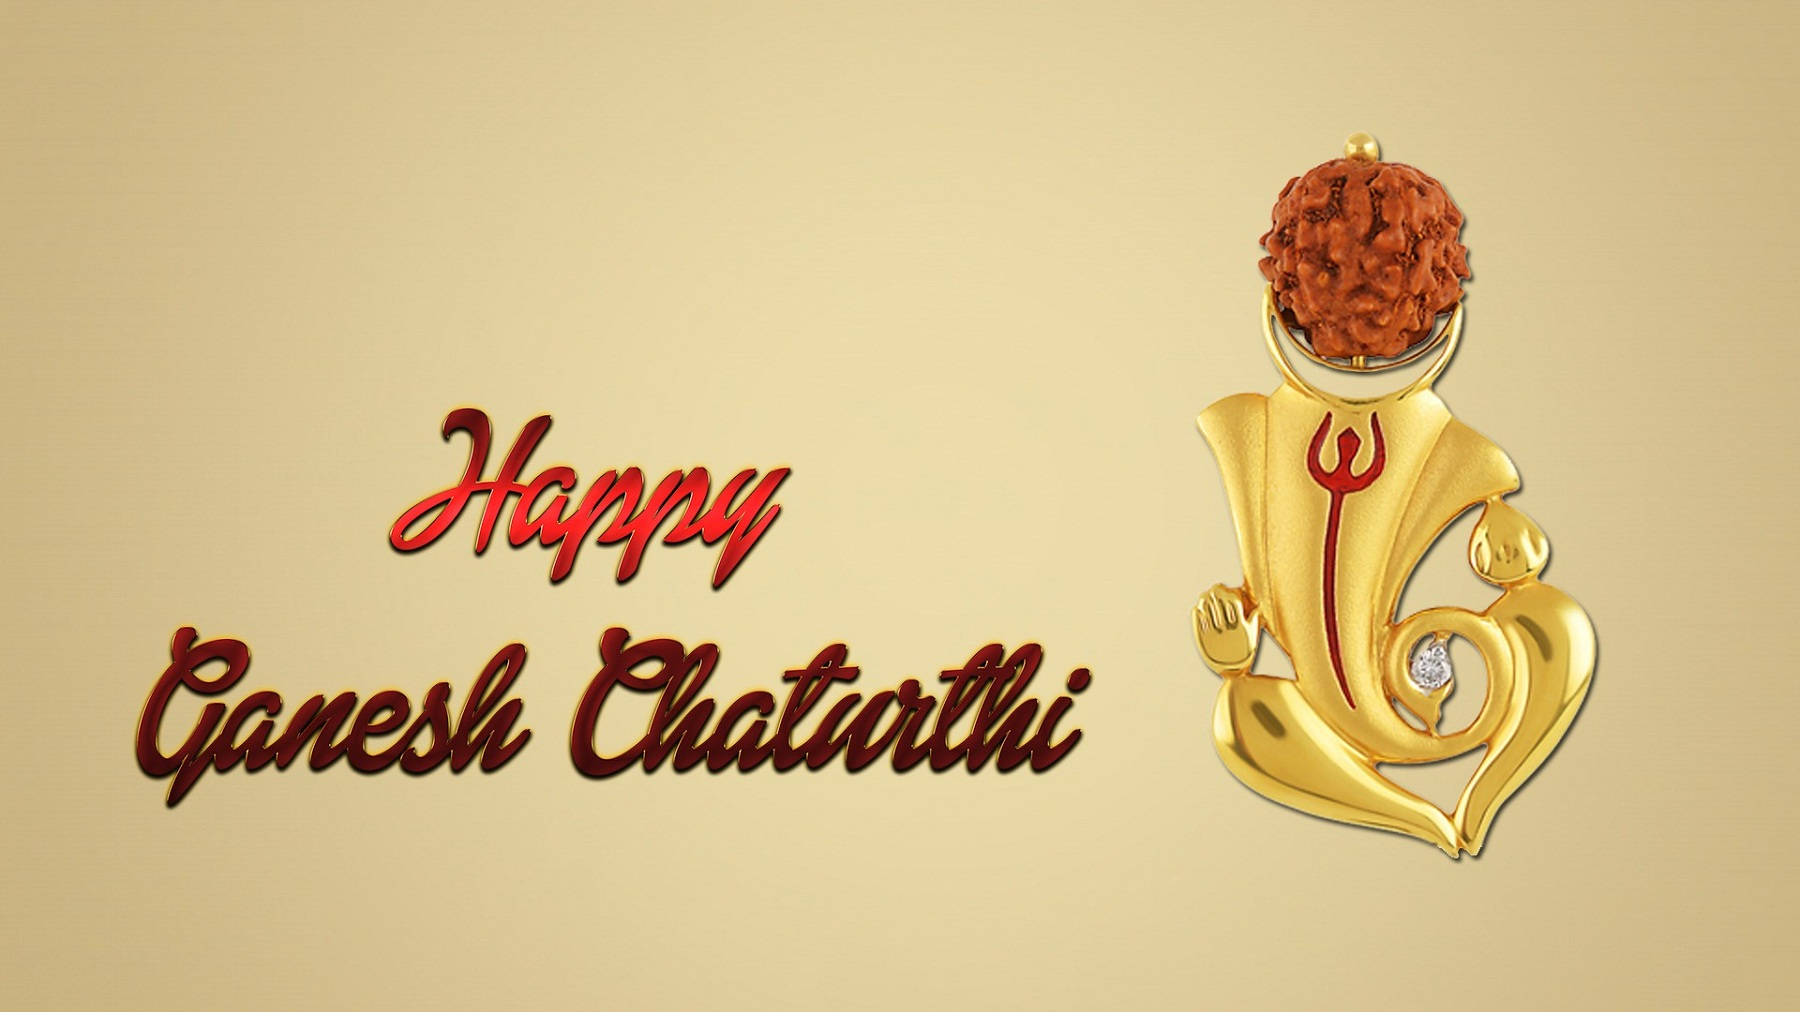 Download - Ganesh Chaturthi Wallpapers_6